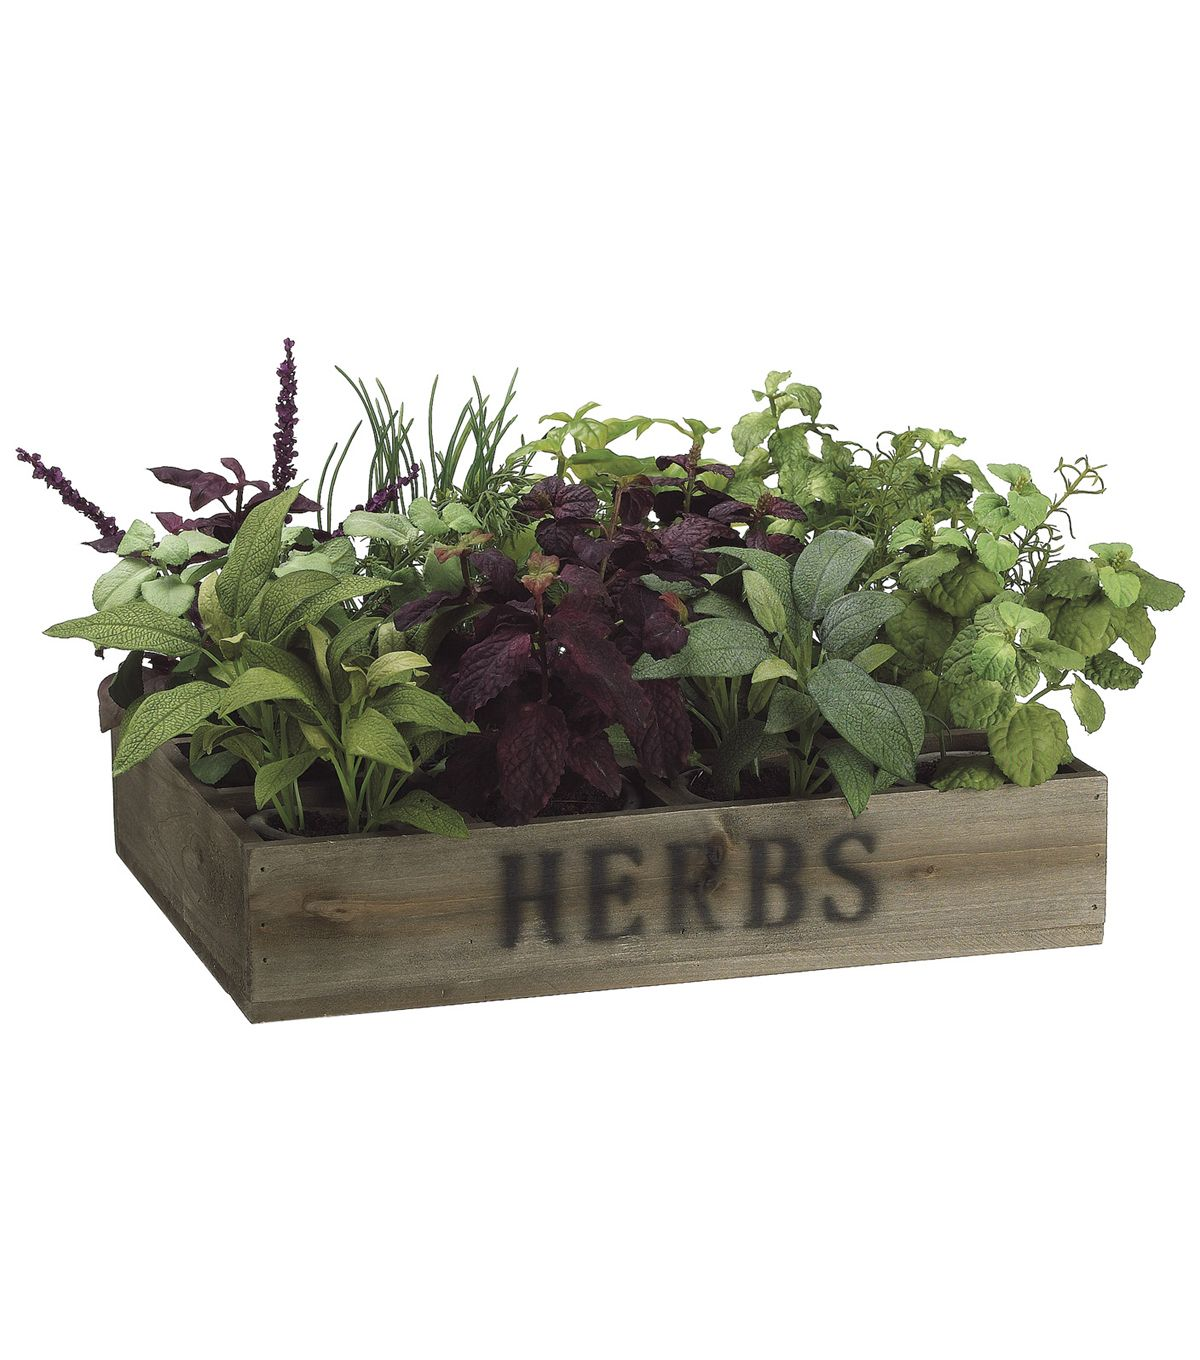 Bloom Room Luxe 9'' Herb Garden In Wood Box-Green | Floral Arrangement | Online Only Product